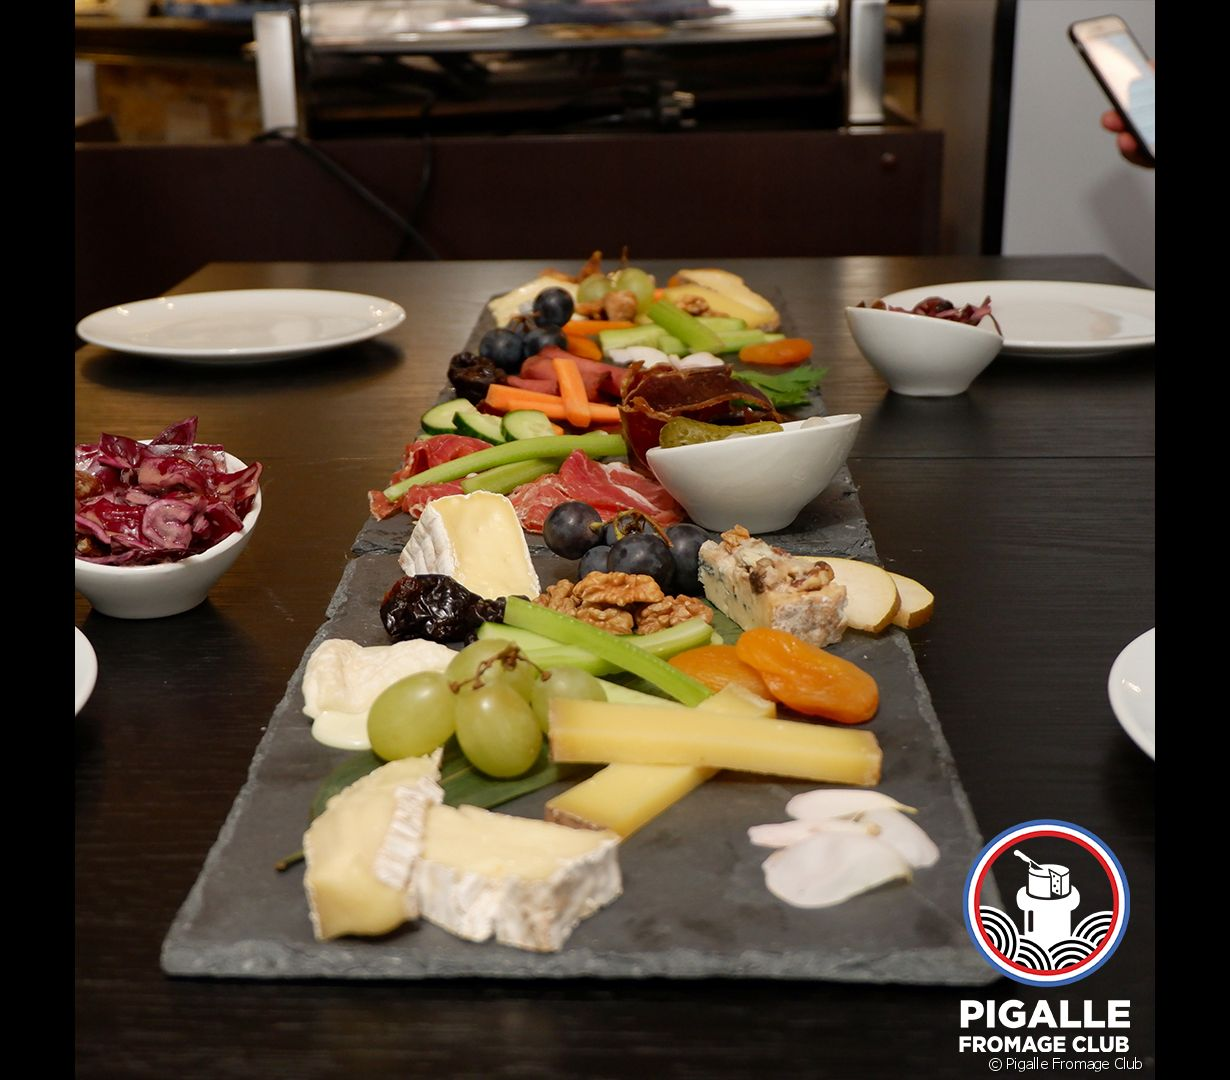 Pigalle Fromage Club, 35 Rue Jean-Baptiste Pigalle, 75009 Paris - Photo 12